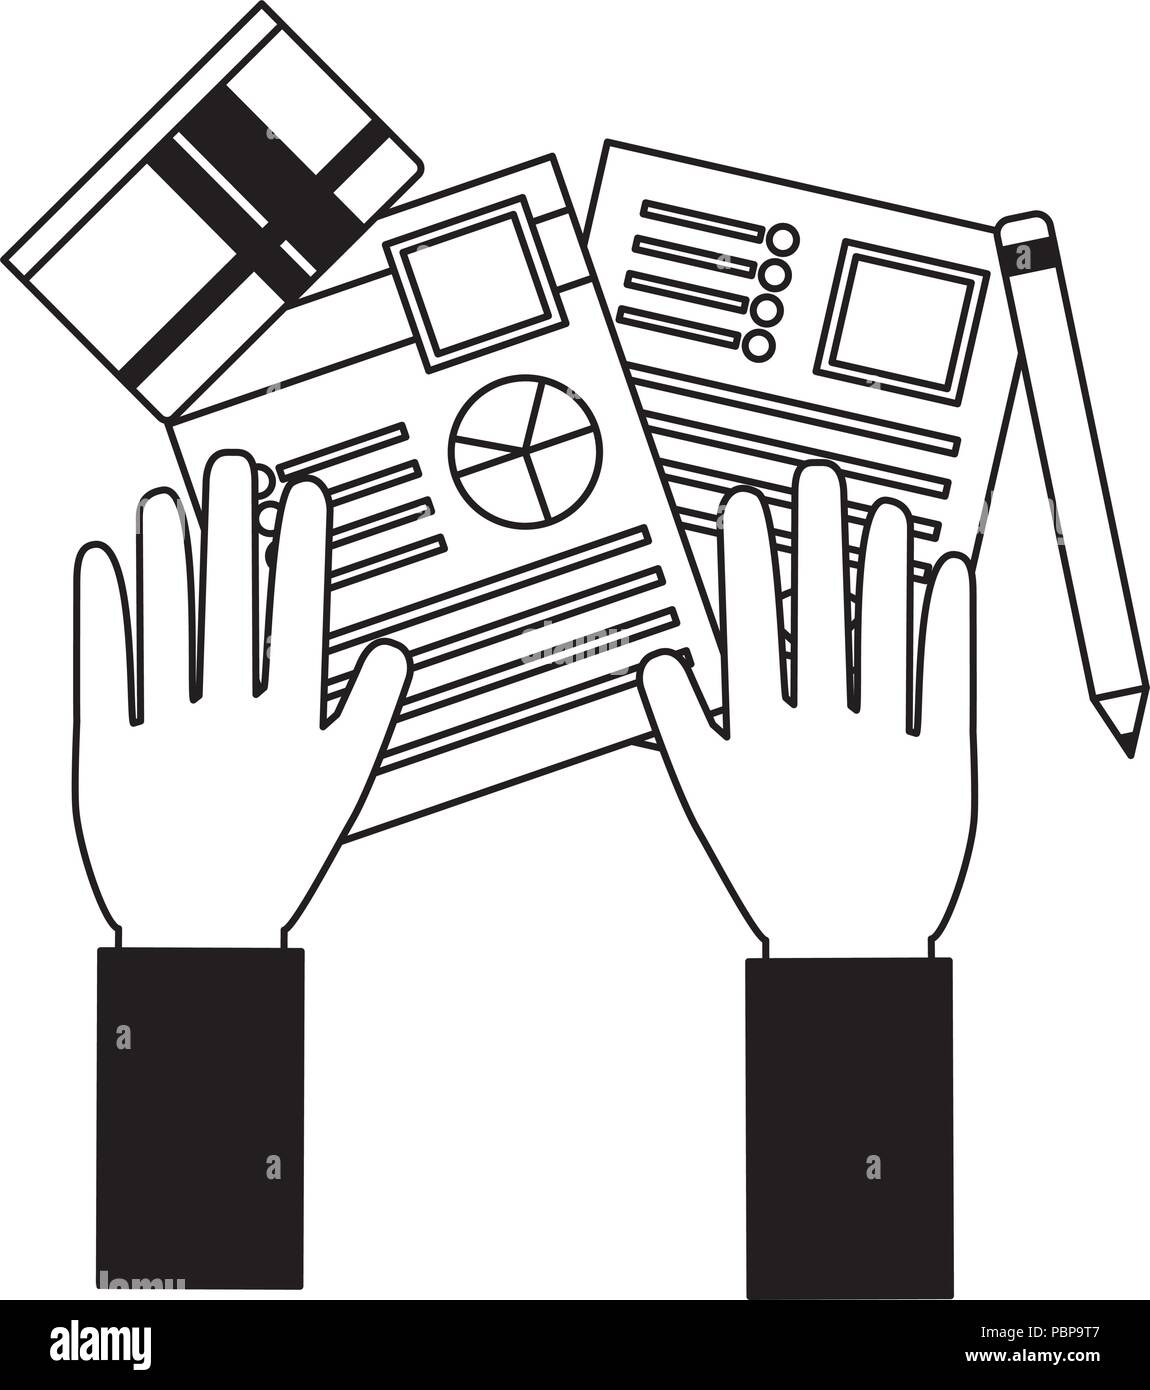 hands with documents files and objects vector illustration